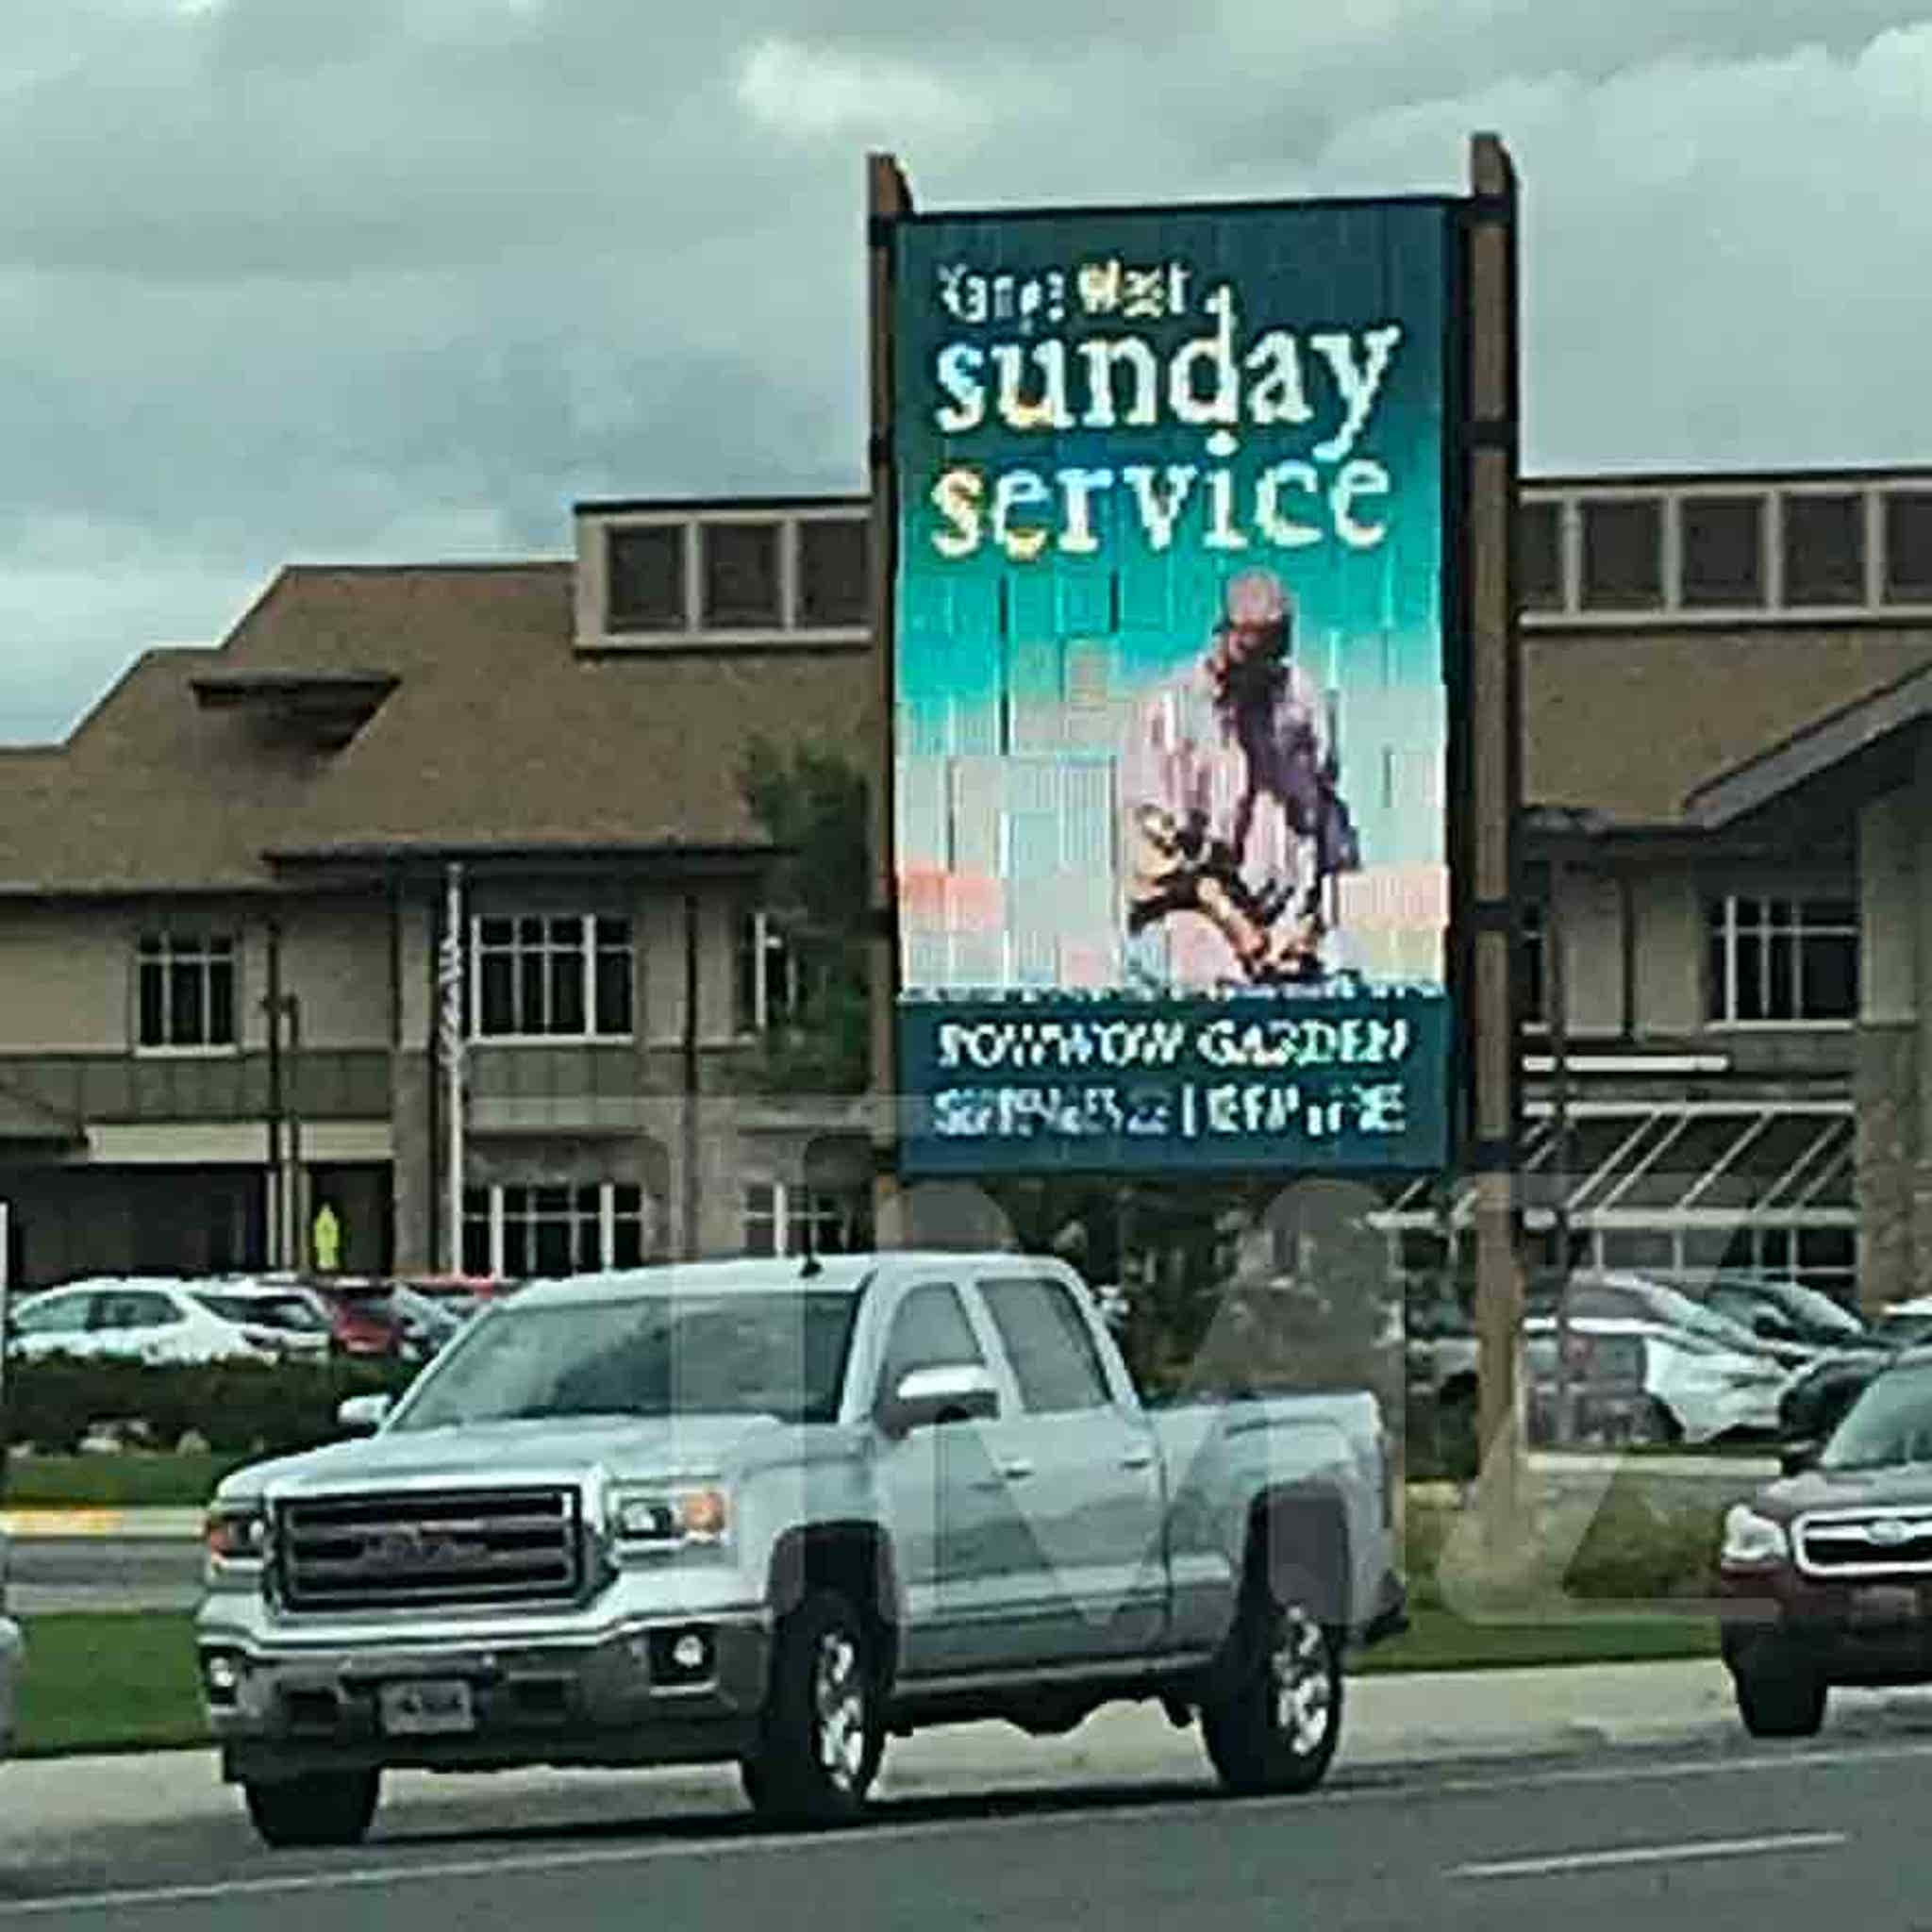 Kanye West Making a Splash in Wyoming With Very Public Sunday Service